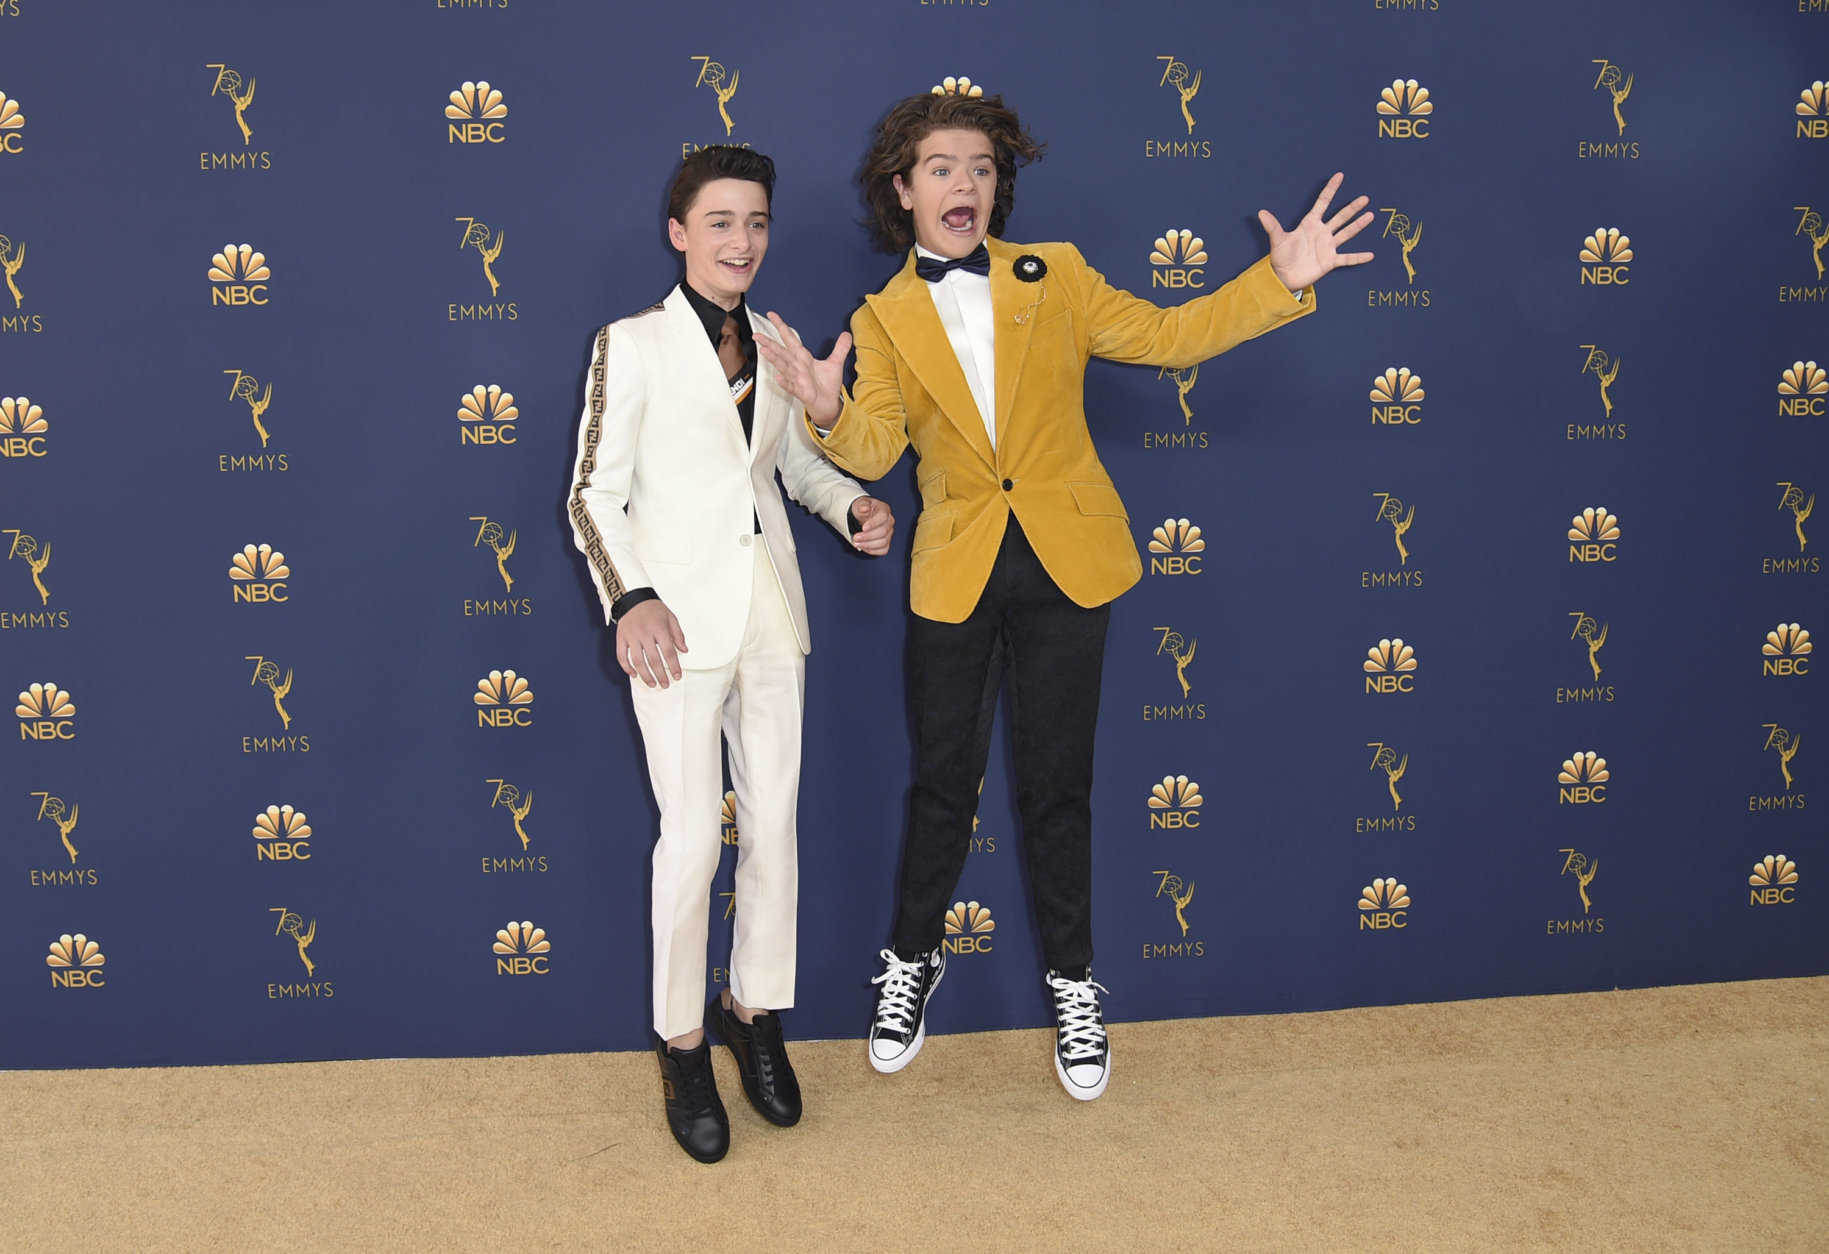 Noah Schnapp, left, and Gaten Matarazzo arrive at the 70th Primetime Emmy Awards on Monday, Sept. 17, 2018, at the Microsoft Theater in Los Angeles. (Photo by Richard Shotwell/Invision/AP)